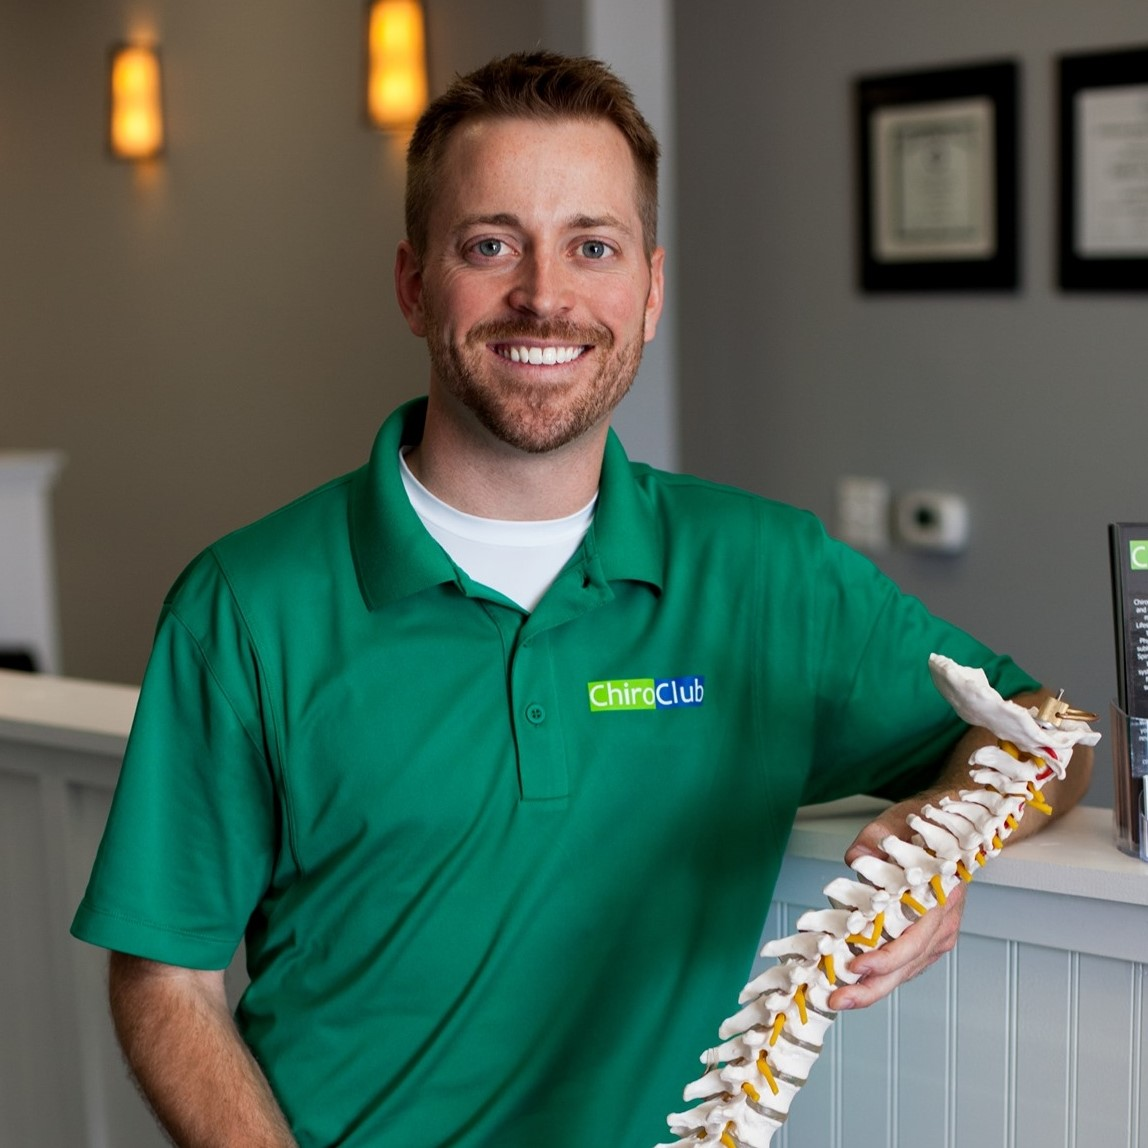 Dr. Zach Lundbohm owner of ChiroClub Chiropractic Bloomington